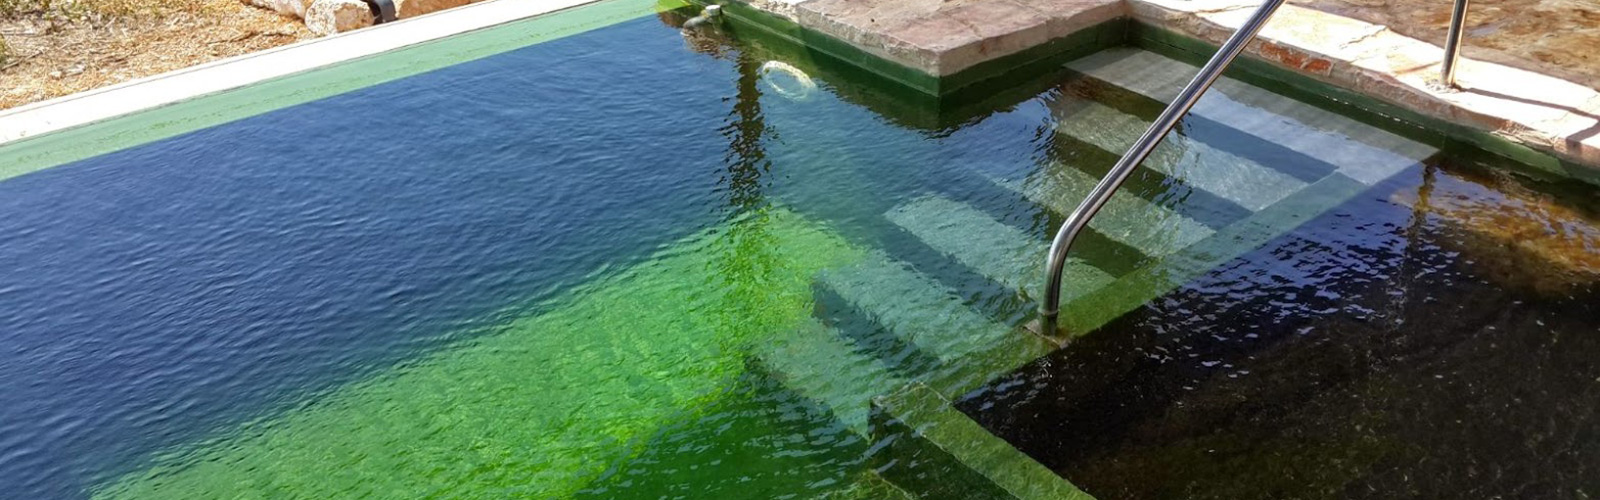 Swimming Pool Membrane Green img